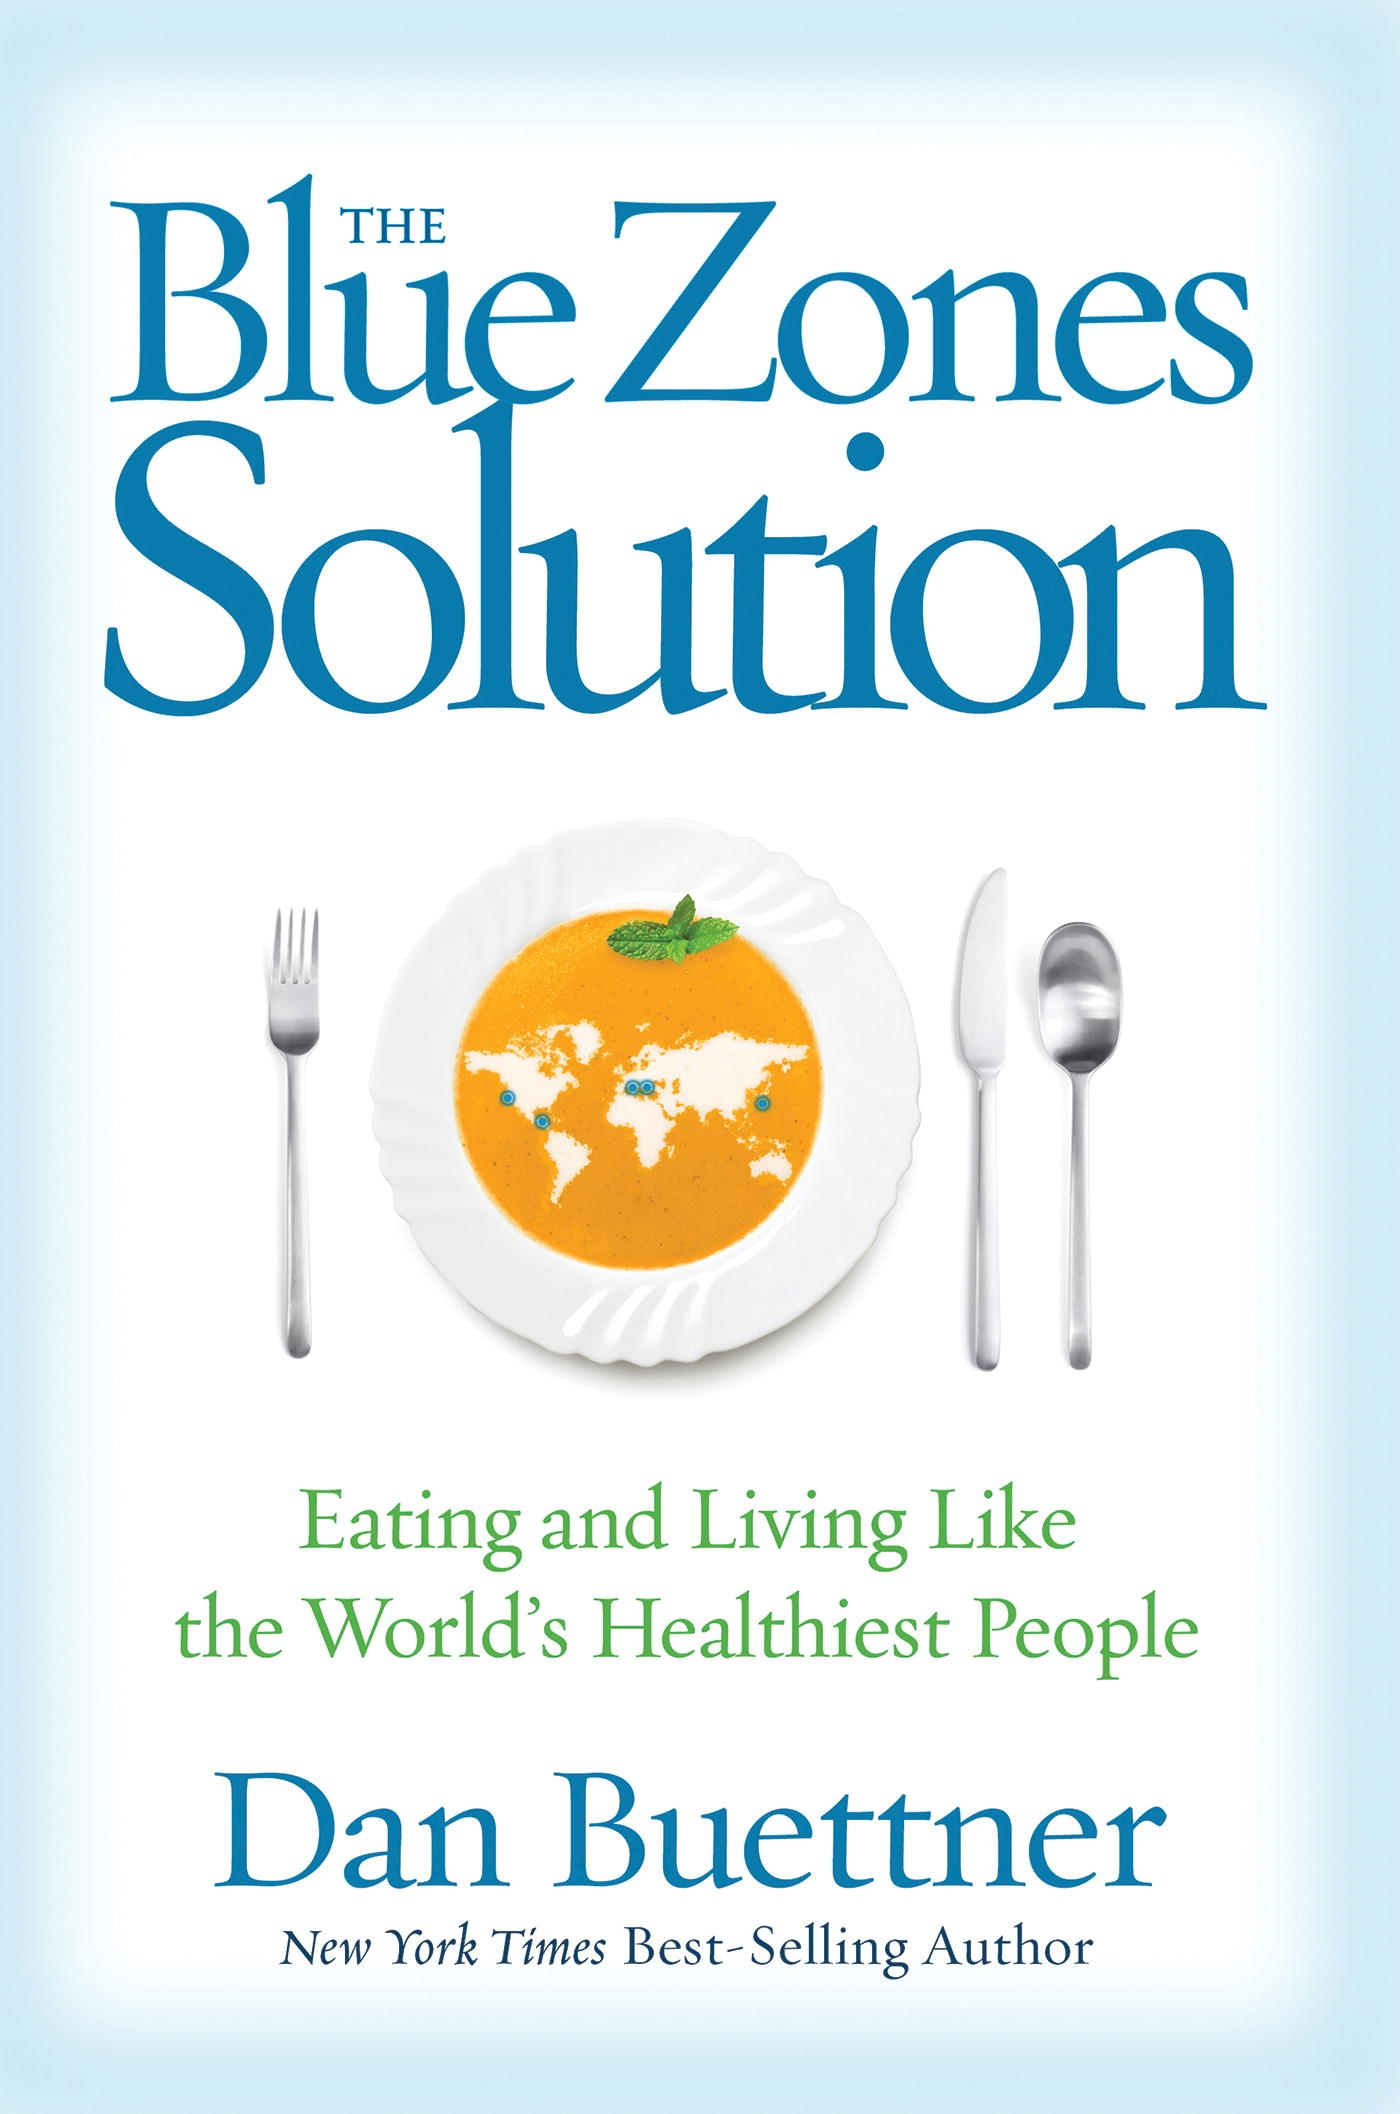 The Blue Zones Solution: A Proven Plan for Healthy Eating and Living-Based on the Habits of the World's Healthiest People